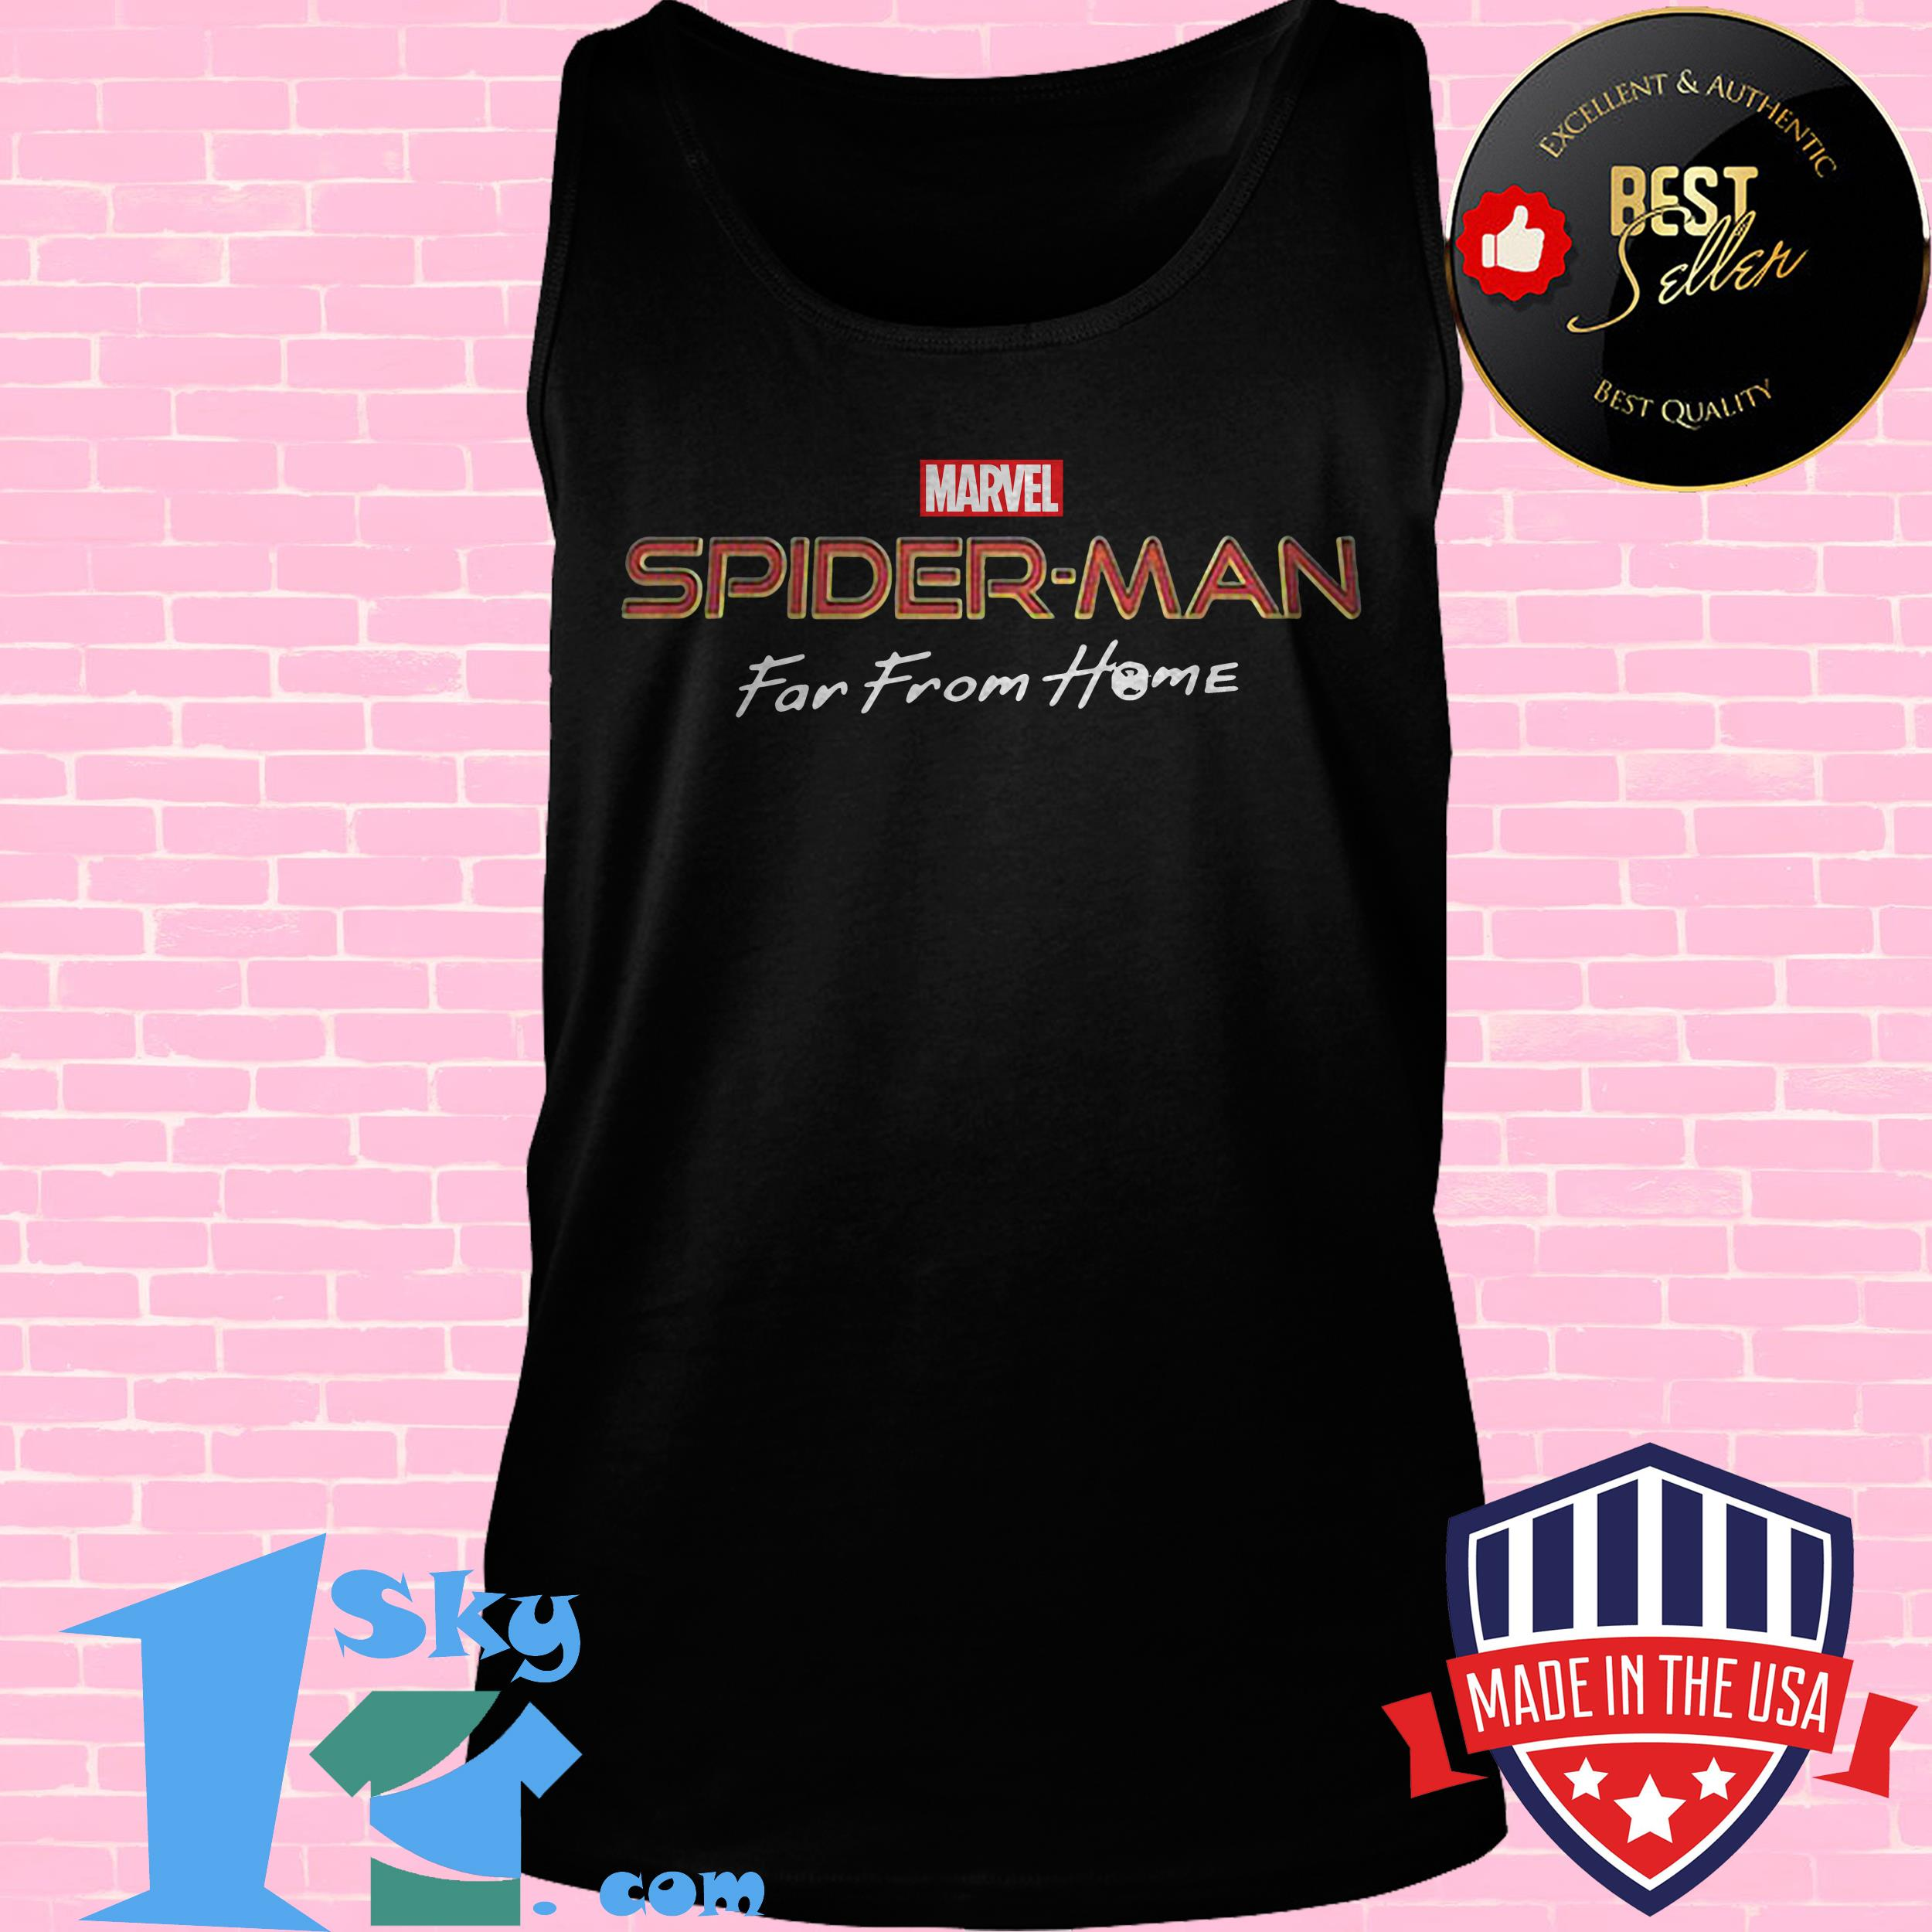 Marvel Spider-Man Far From Home Shirt